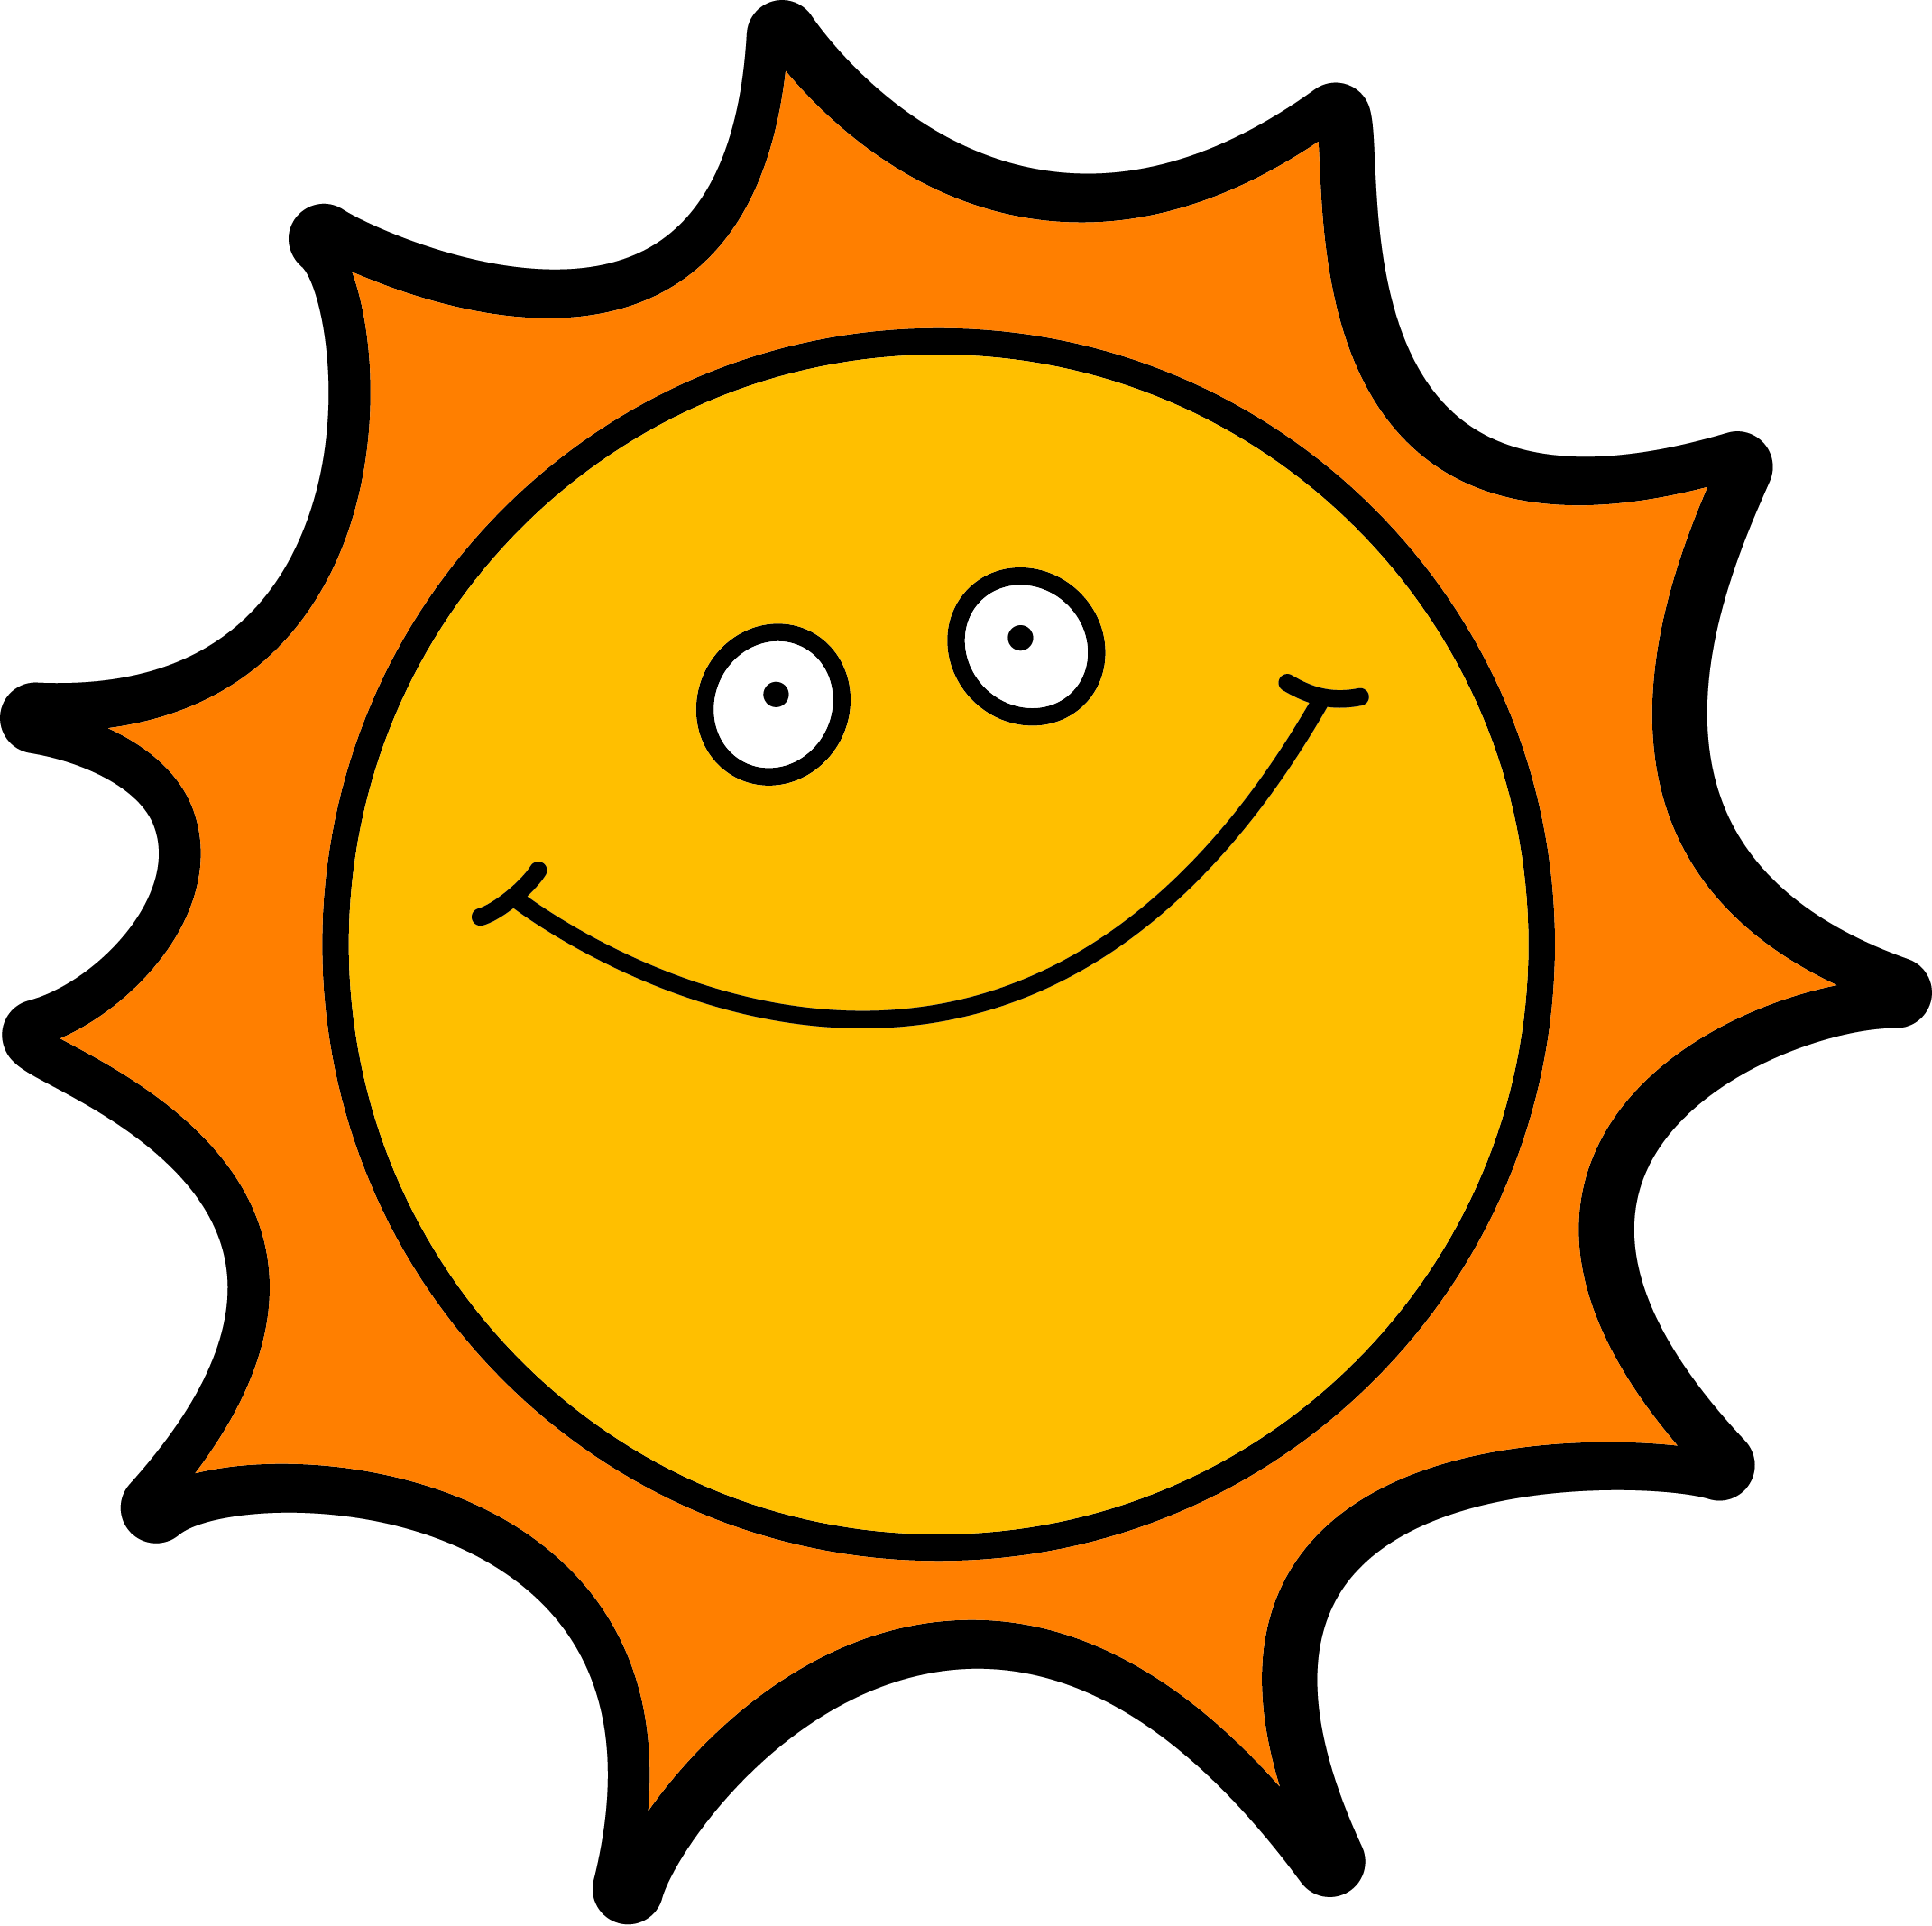 Picture of sun clipart png freeuse Sunshine Free Sun Clipart Public Domain Sun Clip Art Images And 5 png freeuse